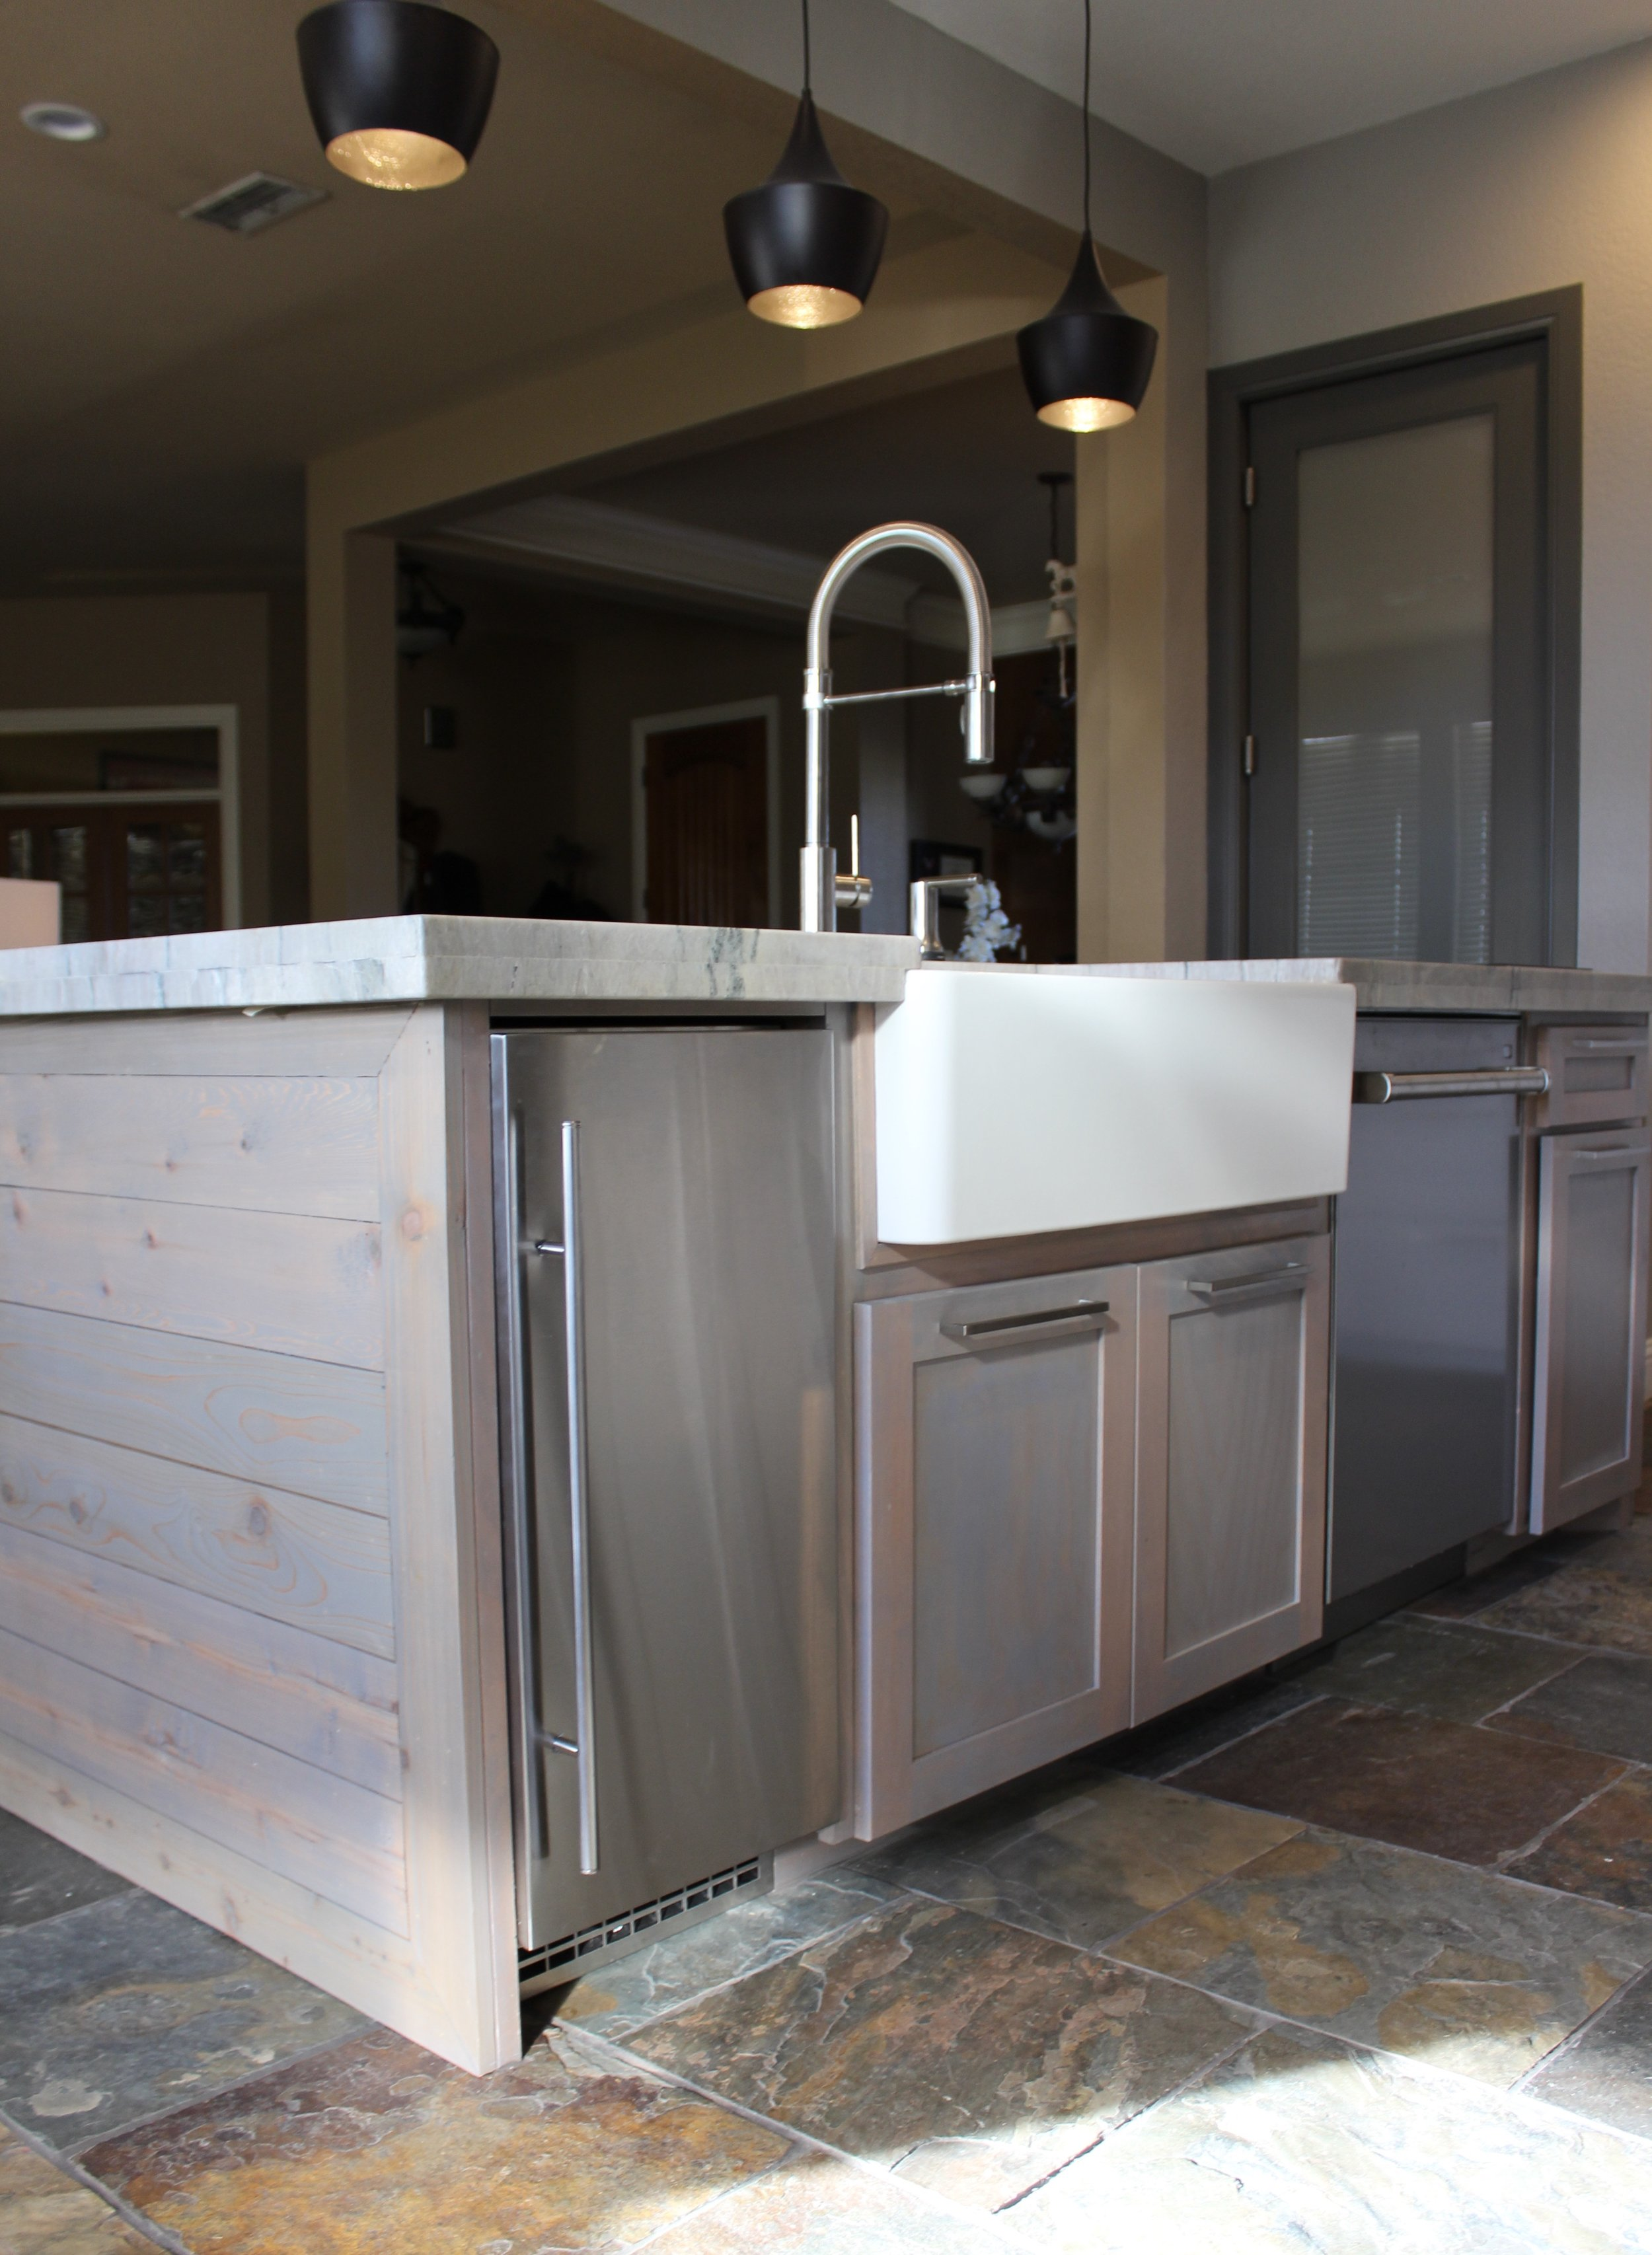 After: We opted for an expansive 5'x8' island complete with a fireclay farm sink, sonic ice maker, dishwasher, and a hibachi grill.